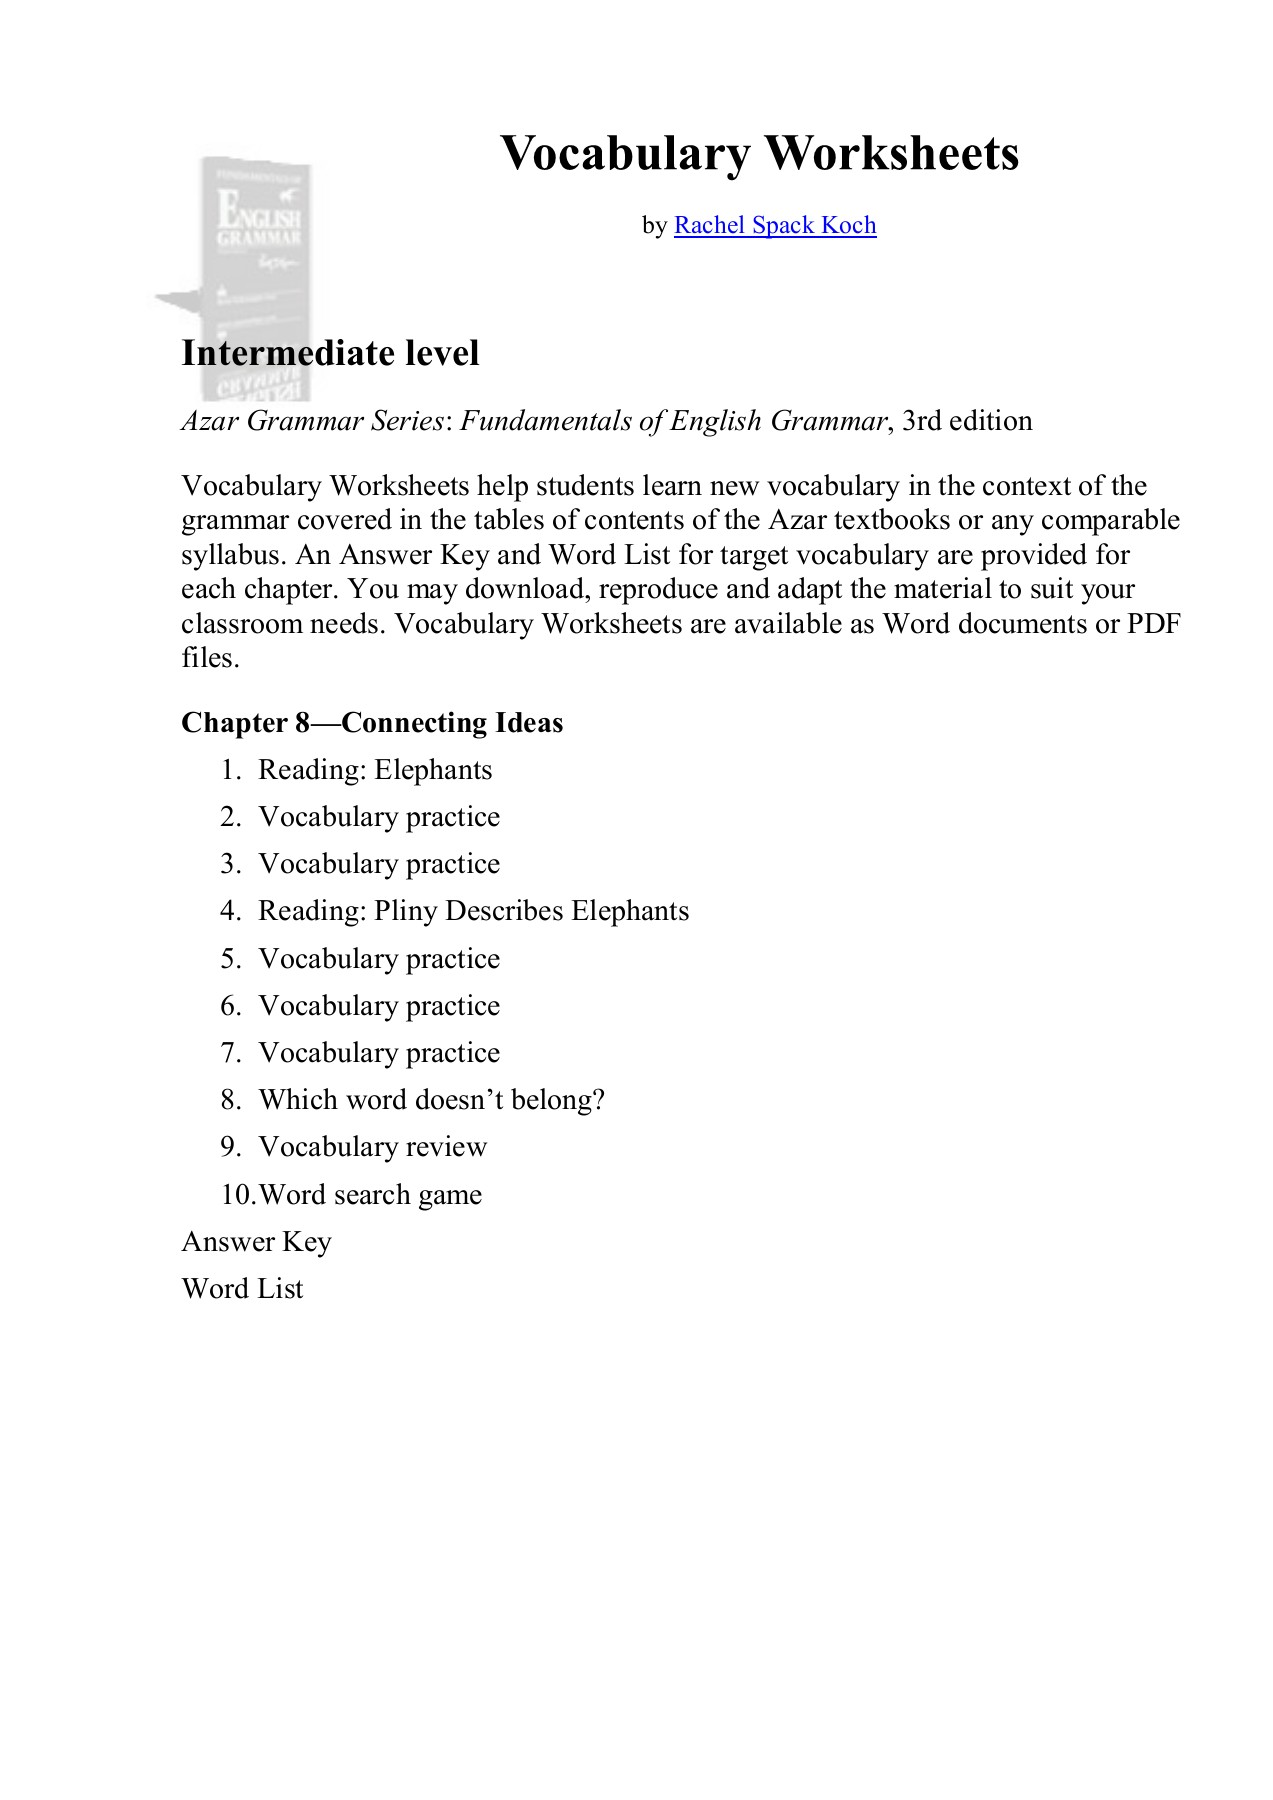 Vocabulary Worksheets - Ning Pages 1 - 17 - Text Version ... on database worksheet pdf, rhythm worksheet pdf, mean median mode worksheet pdf, spanish colors worksheet pdf, parts of speech worksheet pdf, math worksheet pdf, test taking strategies worksheet pdf, daily routine worksheet pdf, sight words worksheet pdf, contractions worksheet pdf, skills worksheet pdf, sequencing worksheet pdf, translation worksheet pdf, literary elements worksheet pdf, art worksheet pdf, anagrams worksheet pdf, geometry worksheet pdf, months of the year worksheet pdf, transitional words worksheet pdf, functions worksheet pdf,